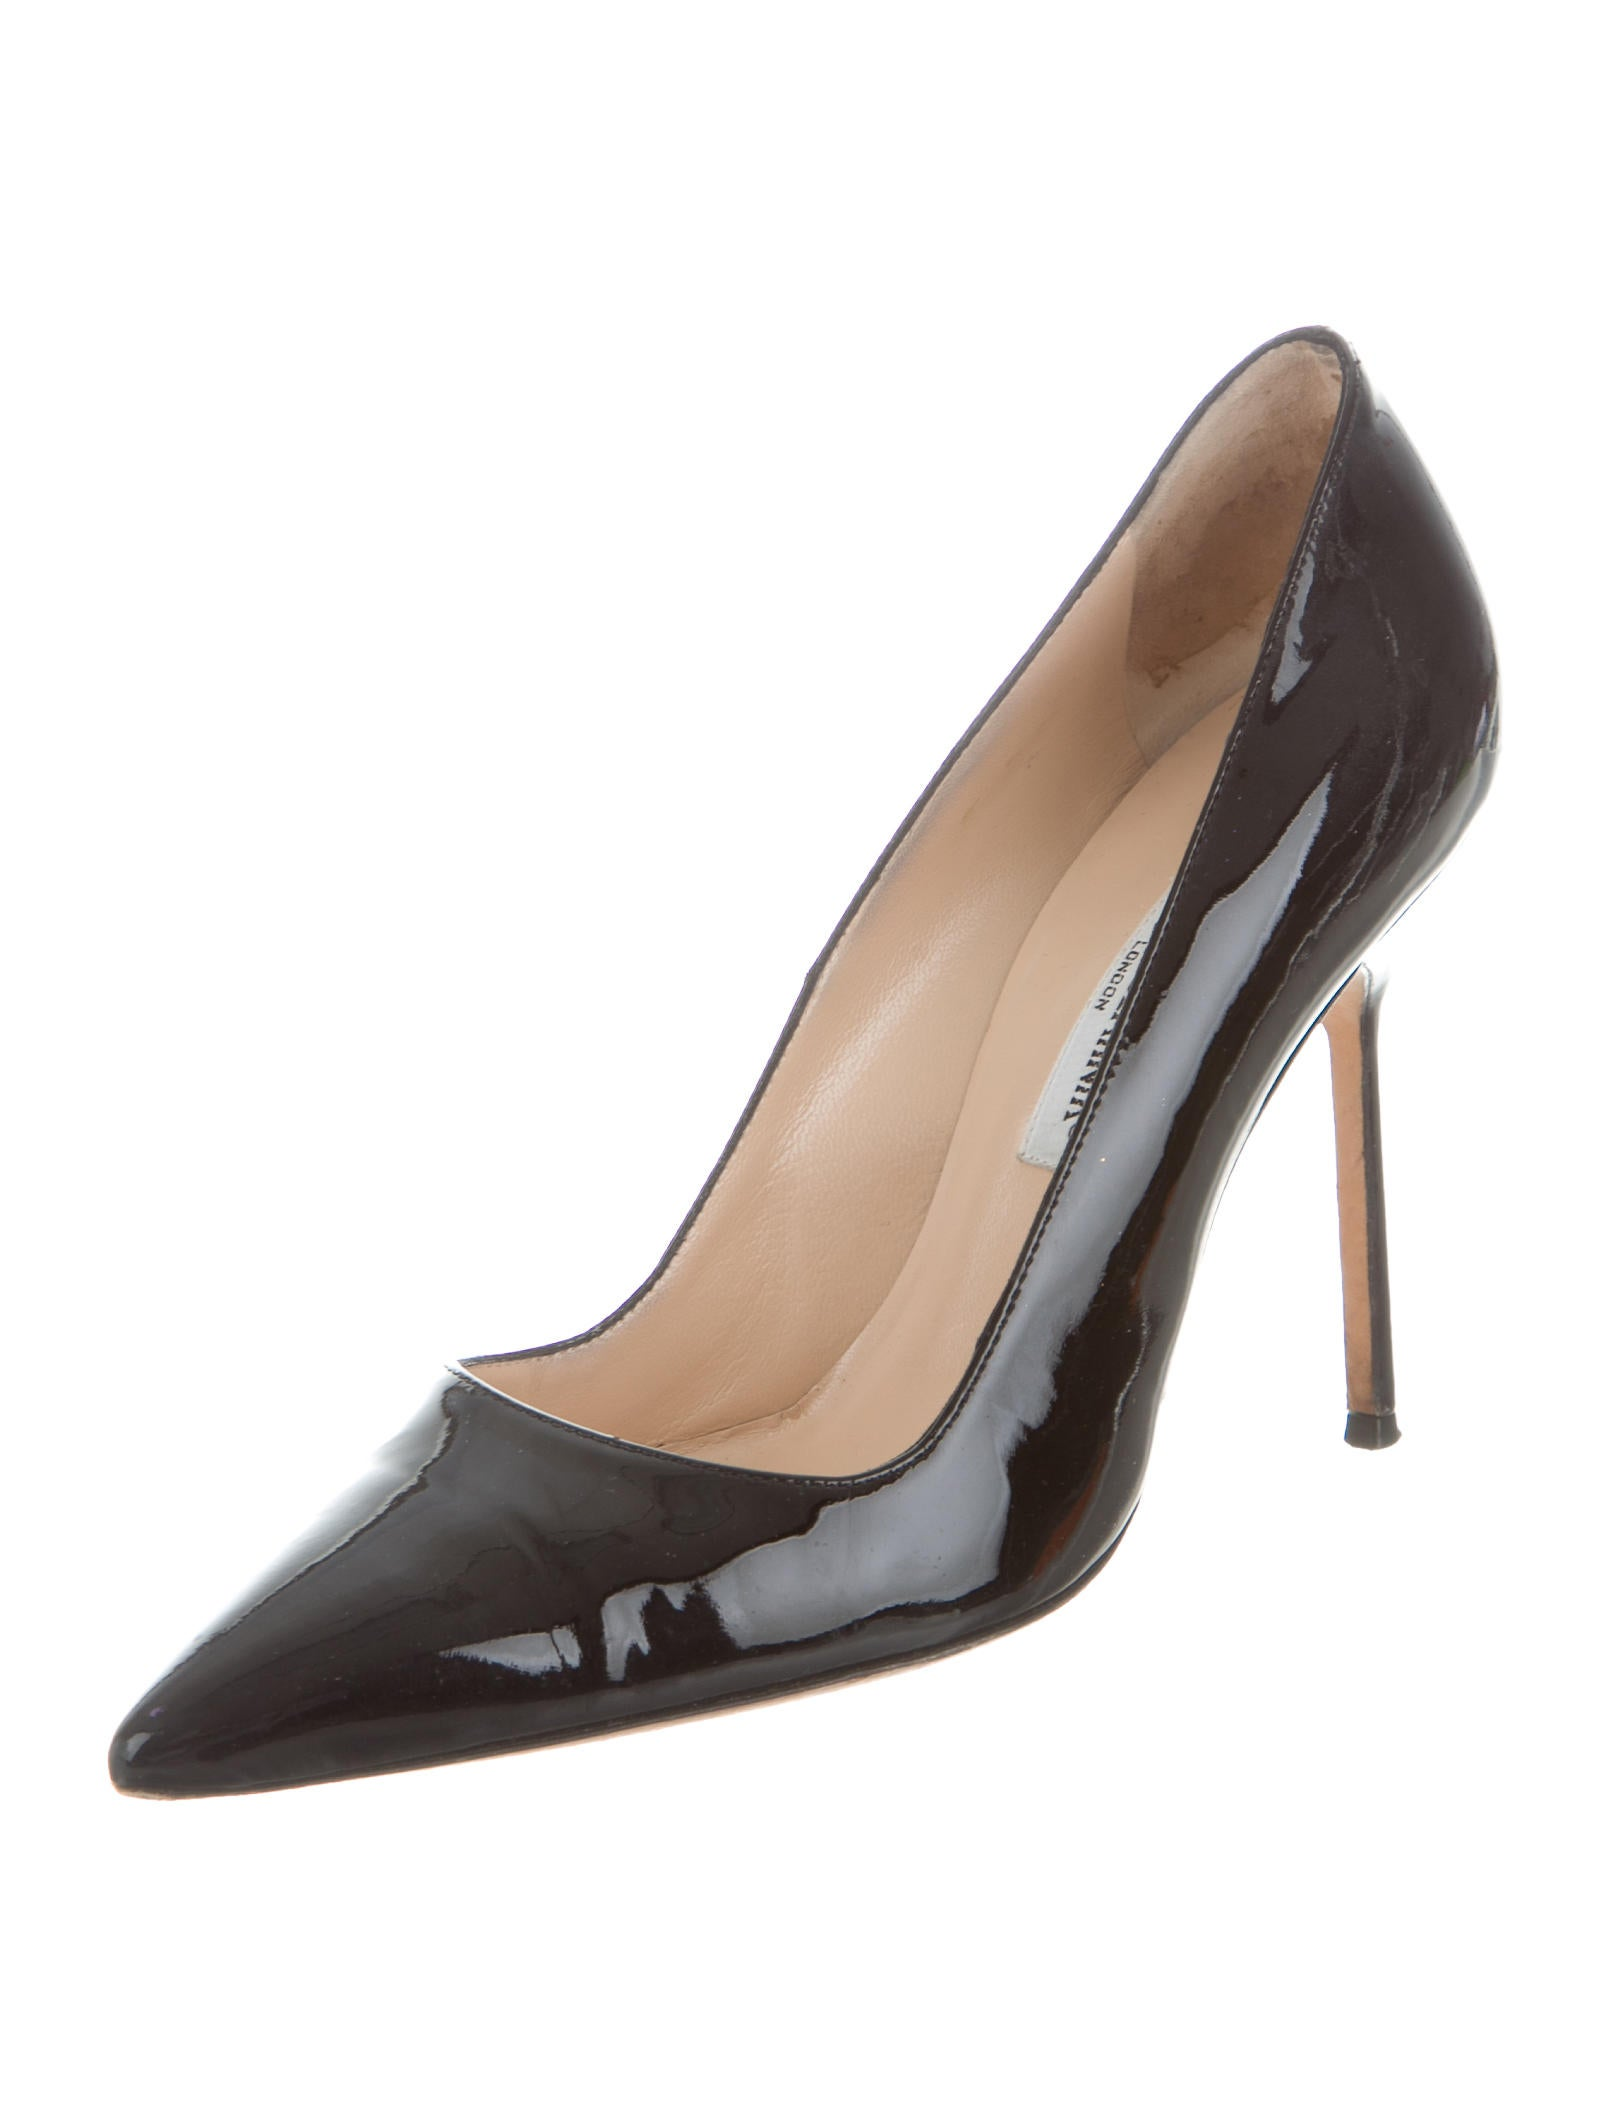 Manolo blahnik patent bb pumps shoes moo61150 the for Shoes by manolo blahnik